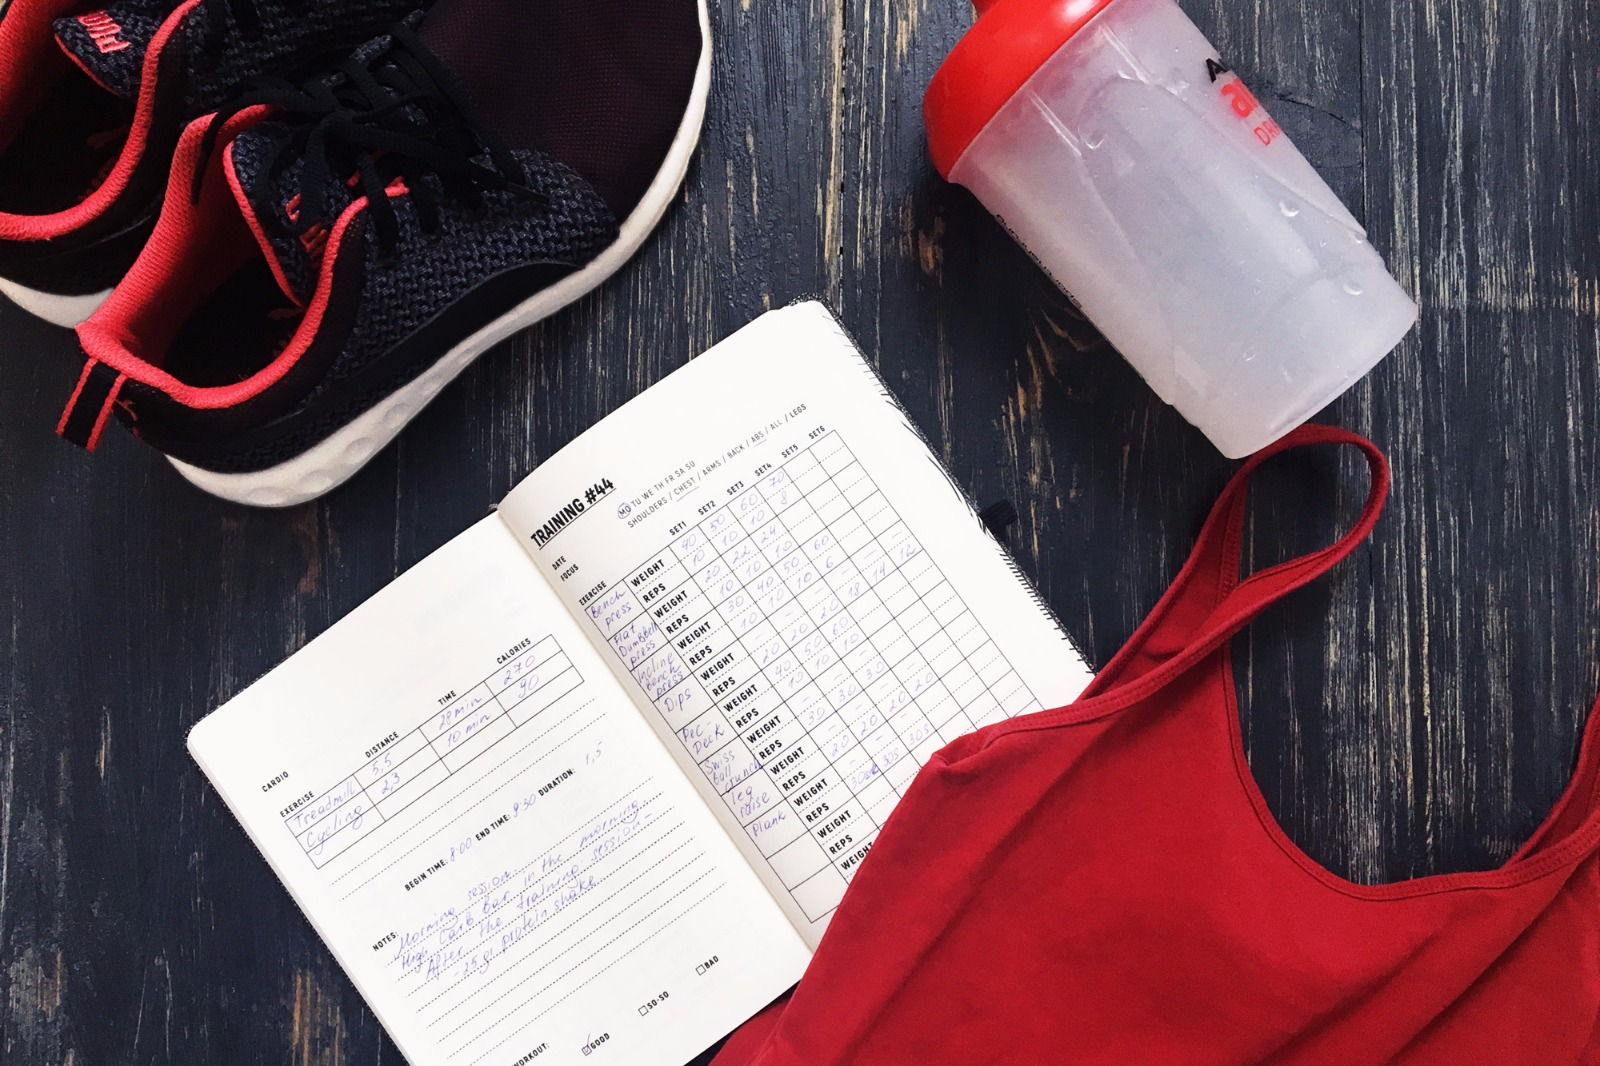 Improve Workout Goals with The Fitness Journal